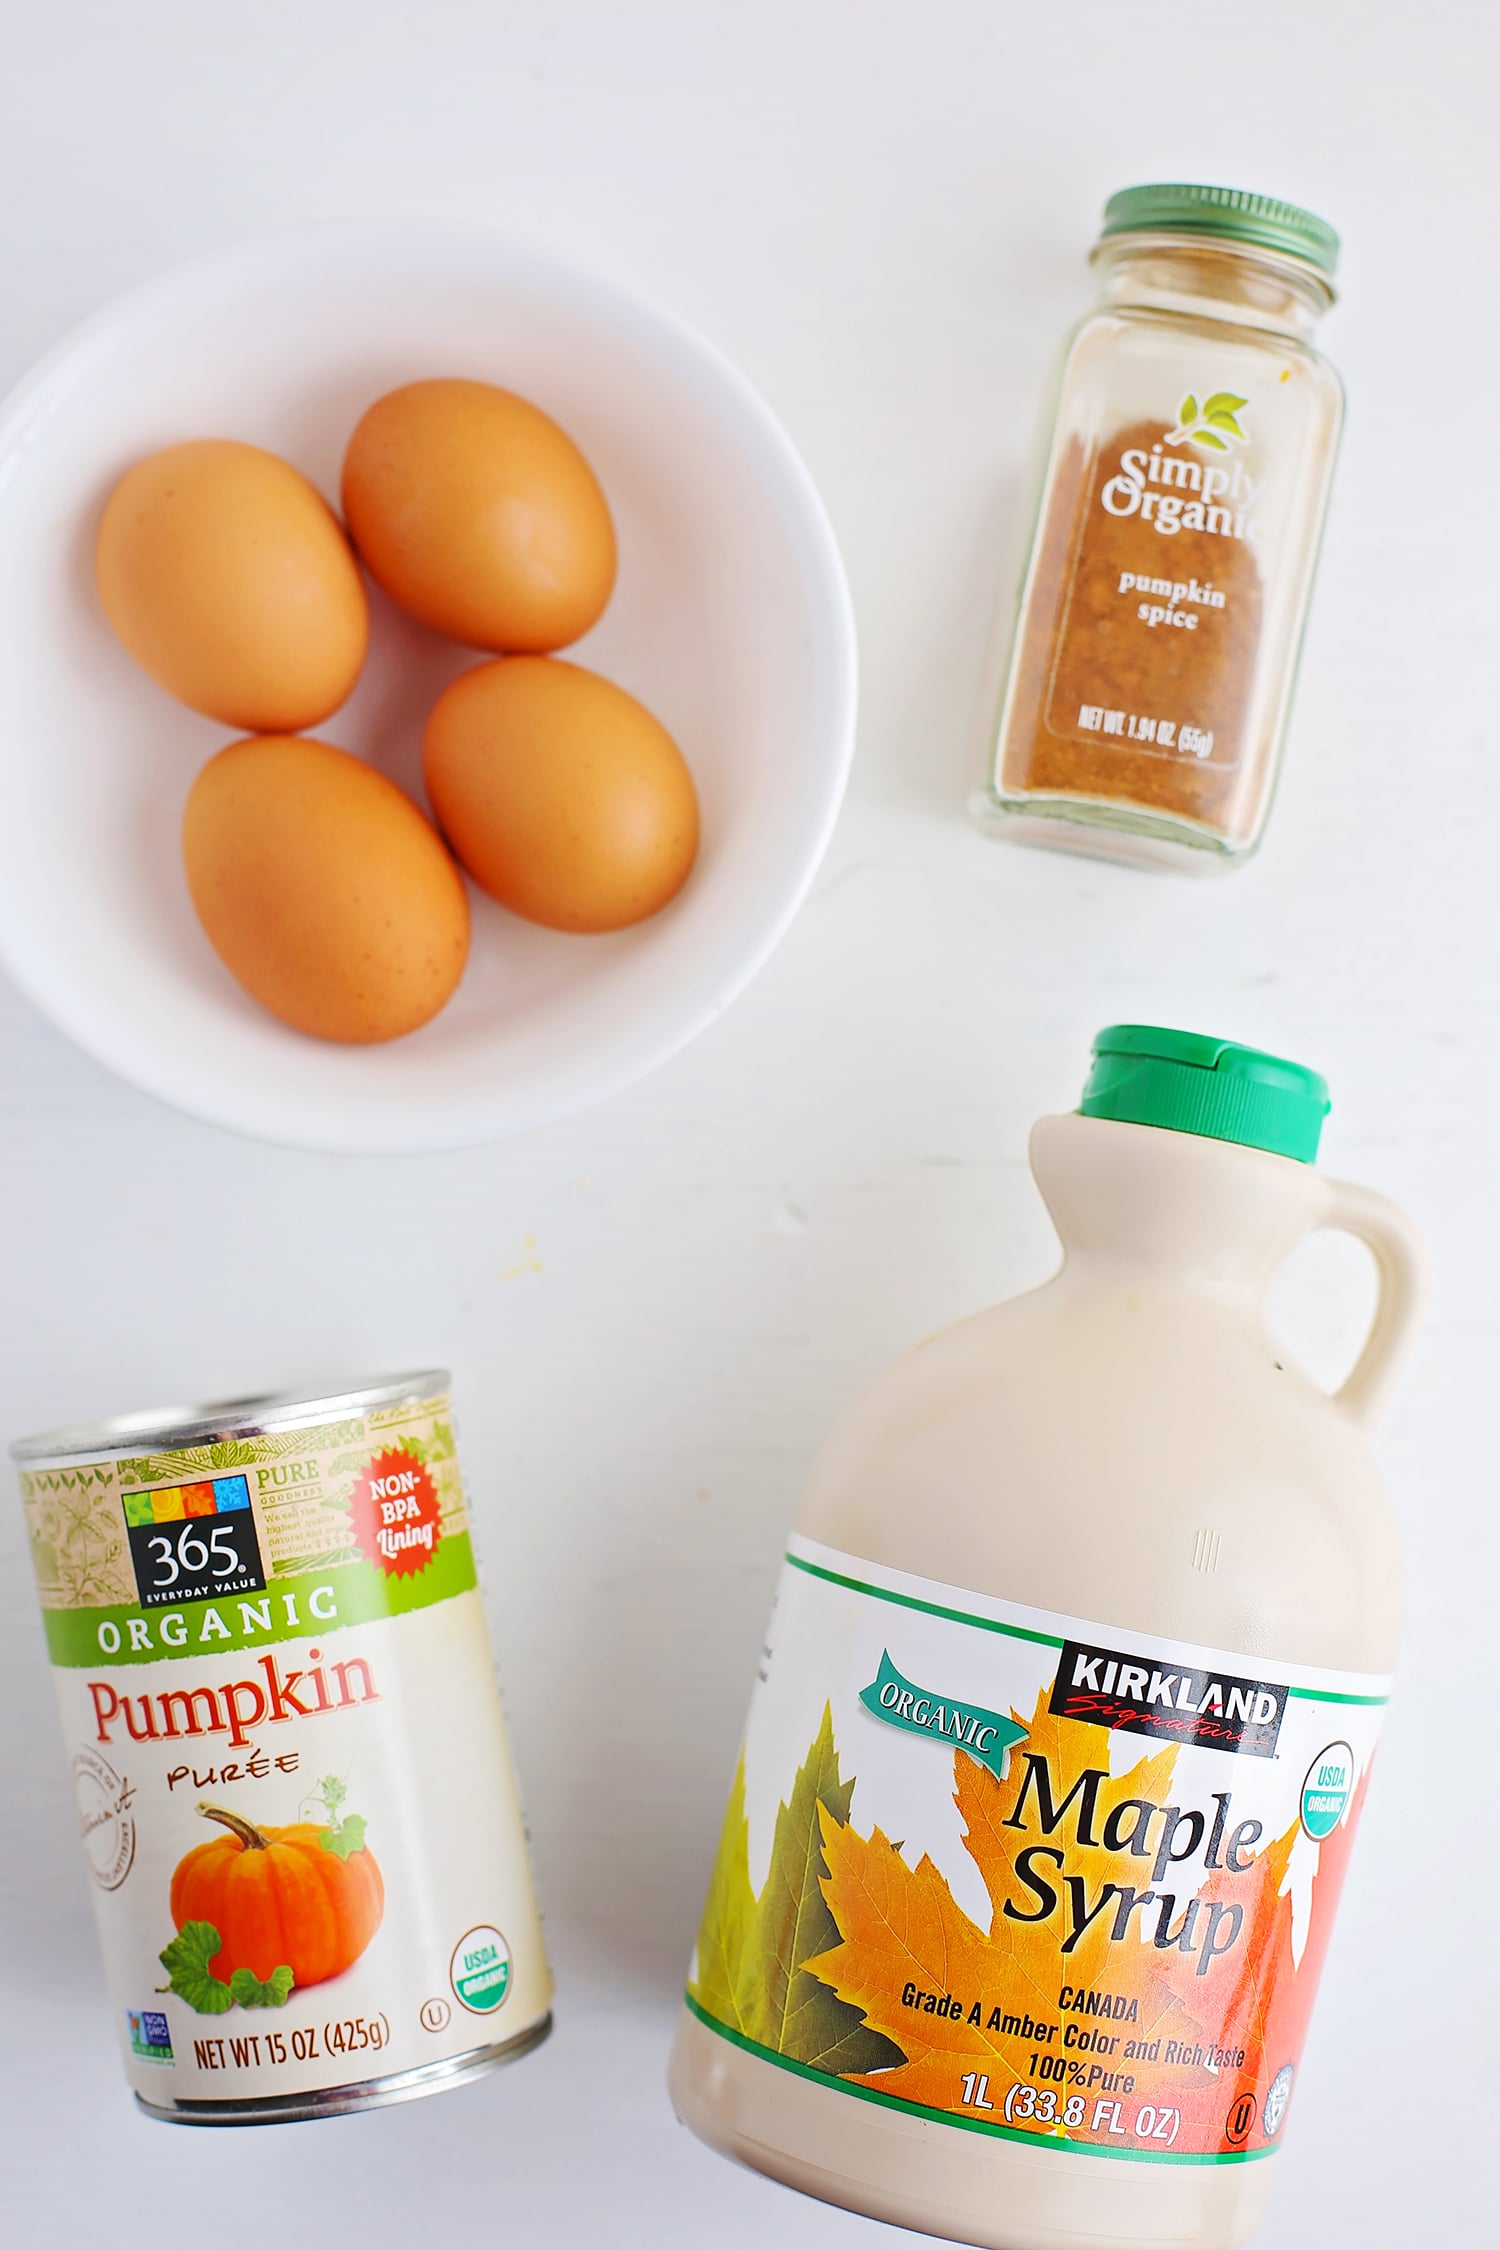 ingredients for making pumpkin pie on the white surface